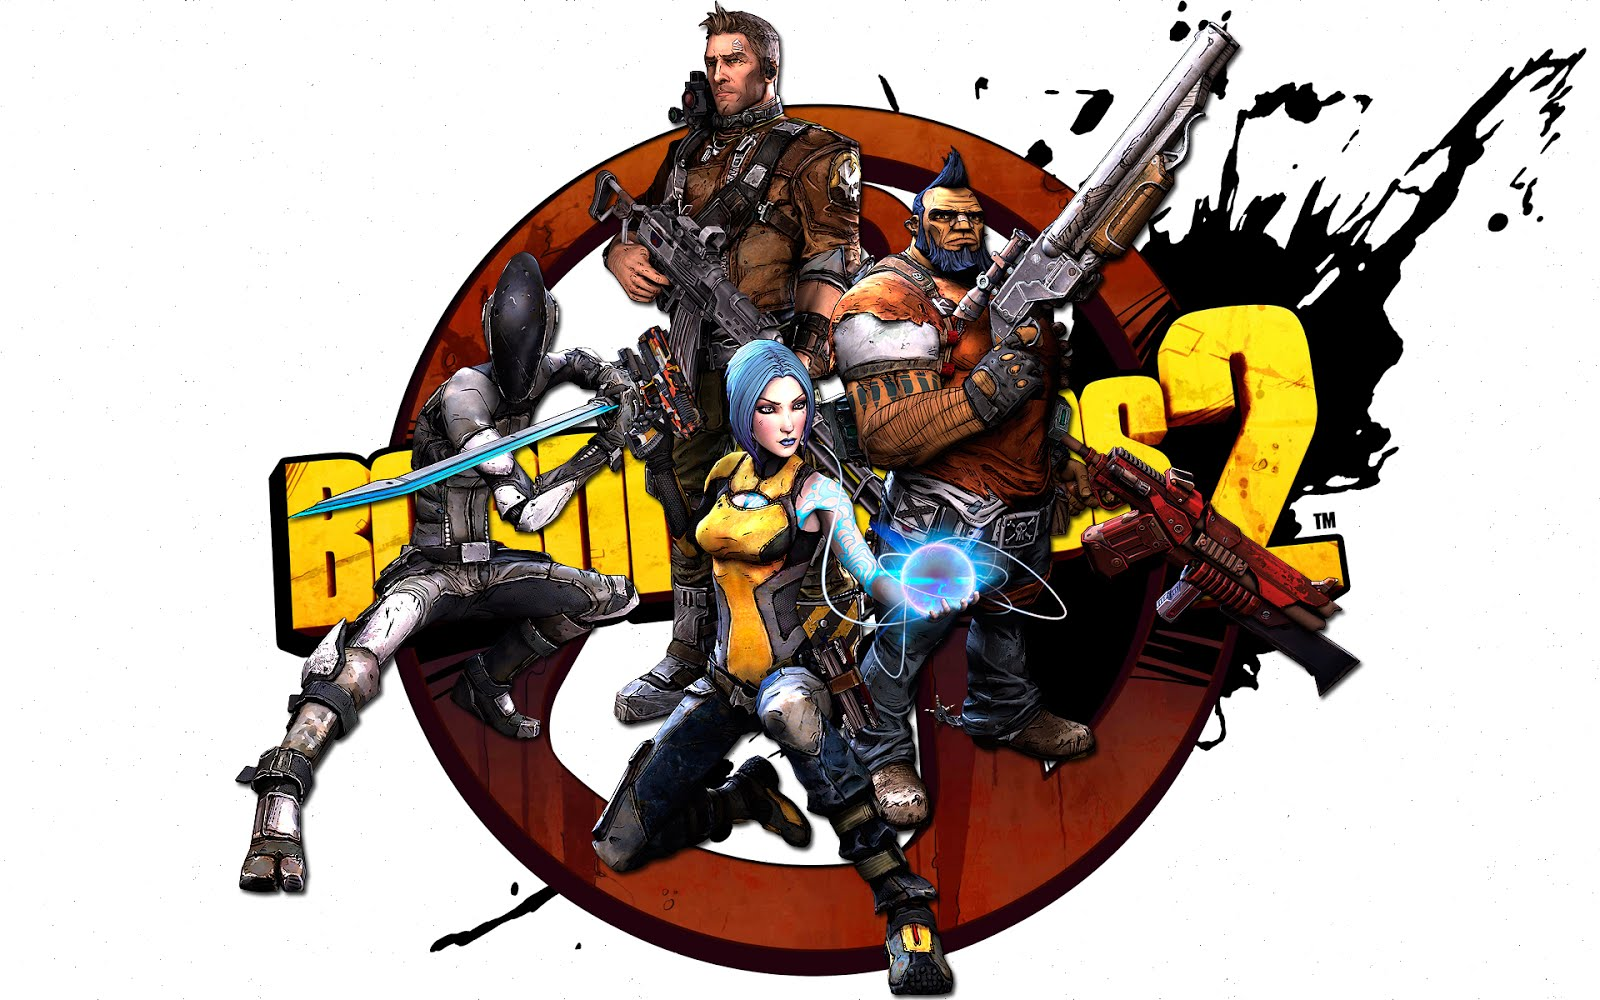 Borderlands 2 Season Pass Game Free On XBOX 360 And PS3 Borderlands